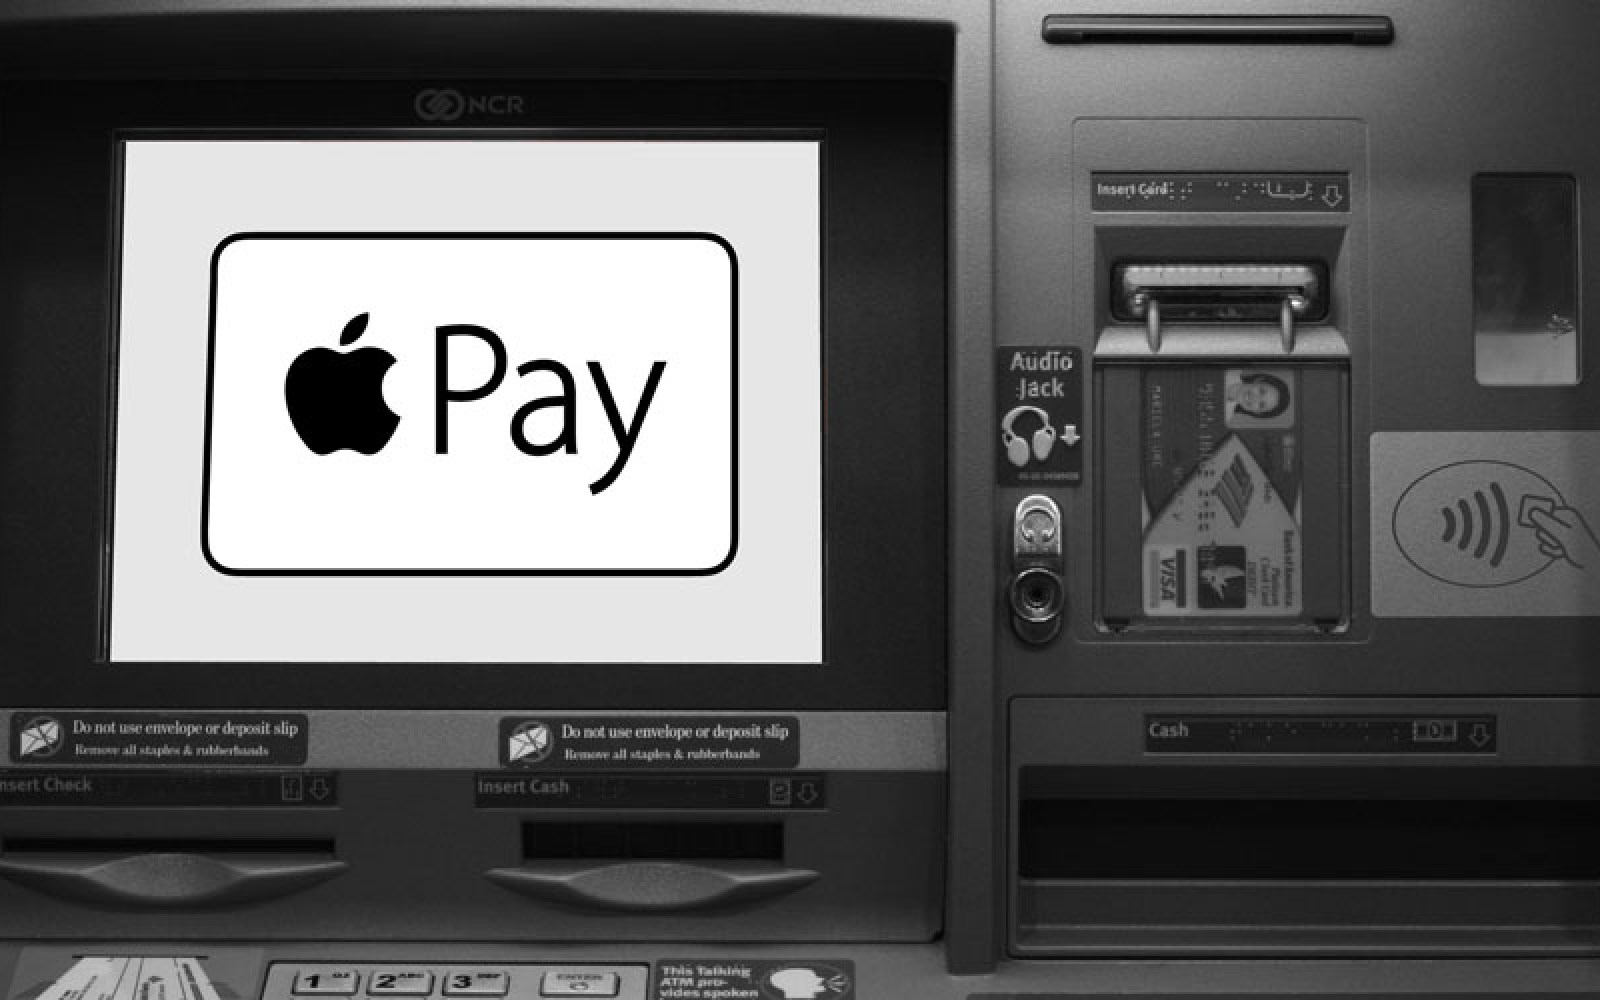 Wells Fargo introducing cardless Apple Pay ATM withdrawals ...